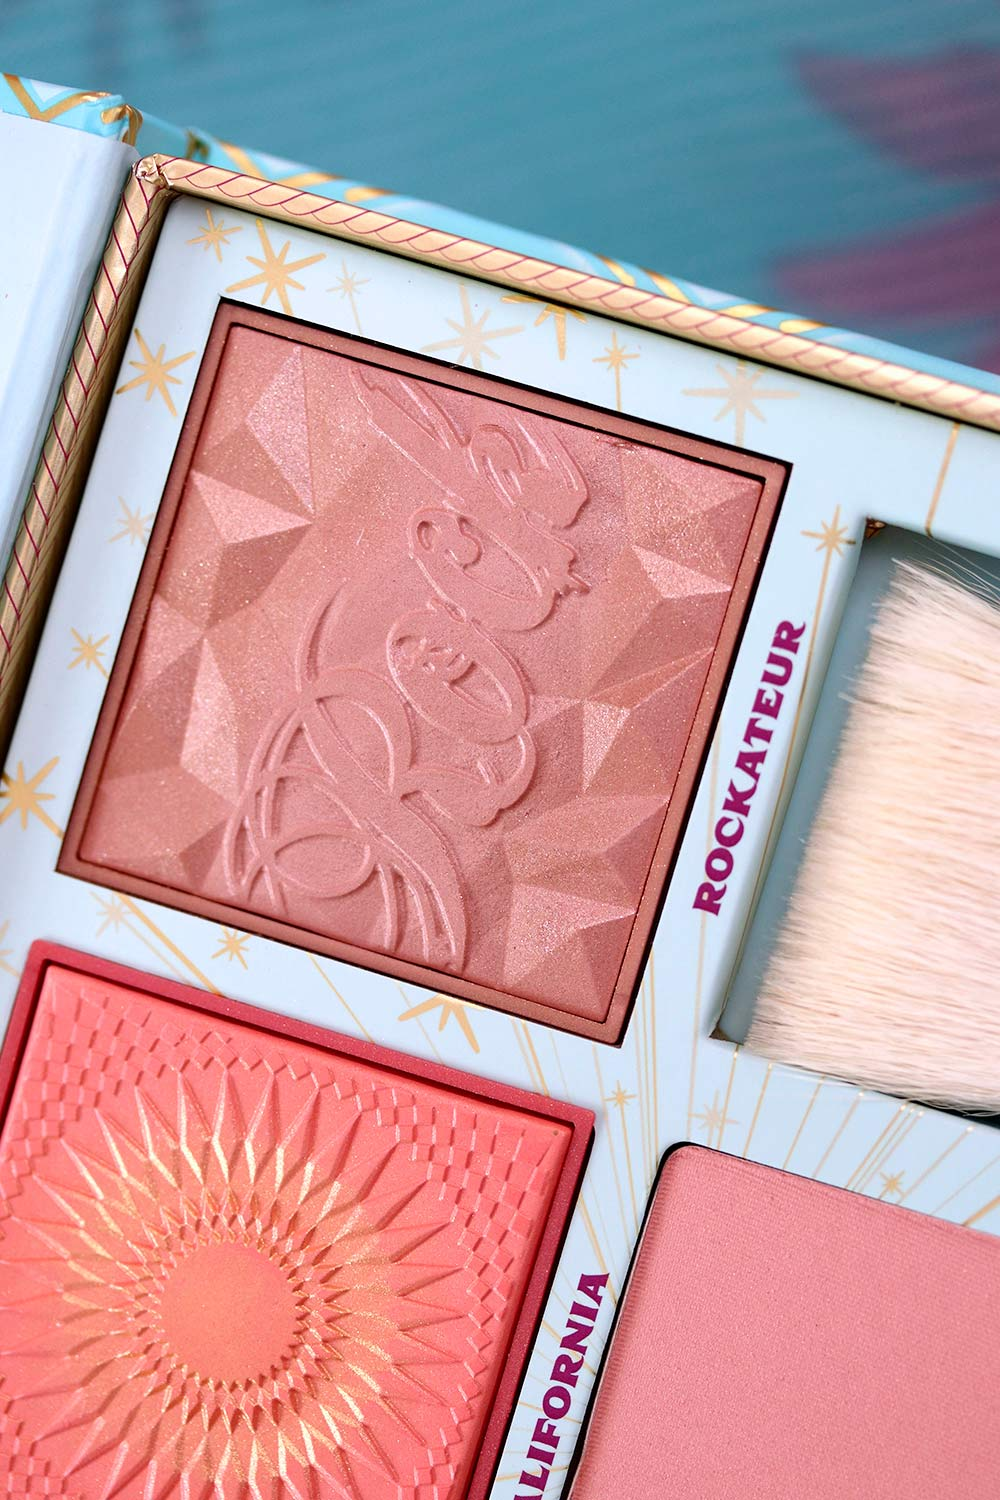 benefit cheek parade blush kit closeup 3